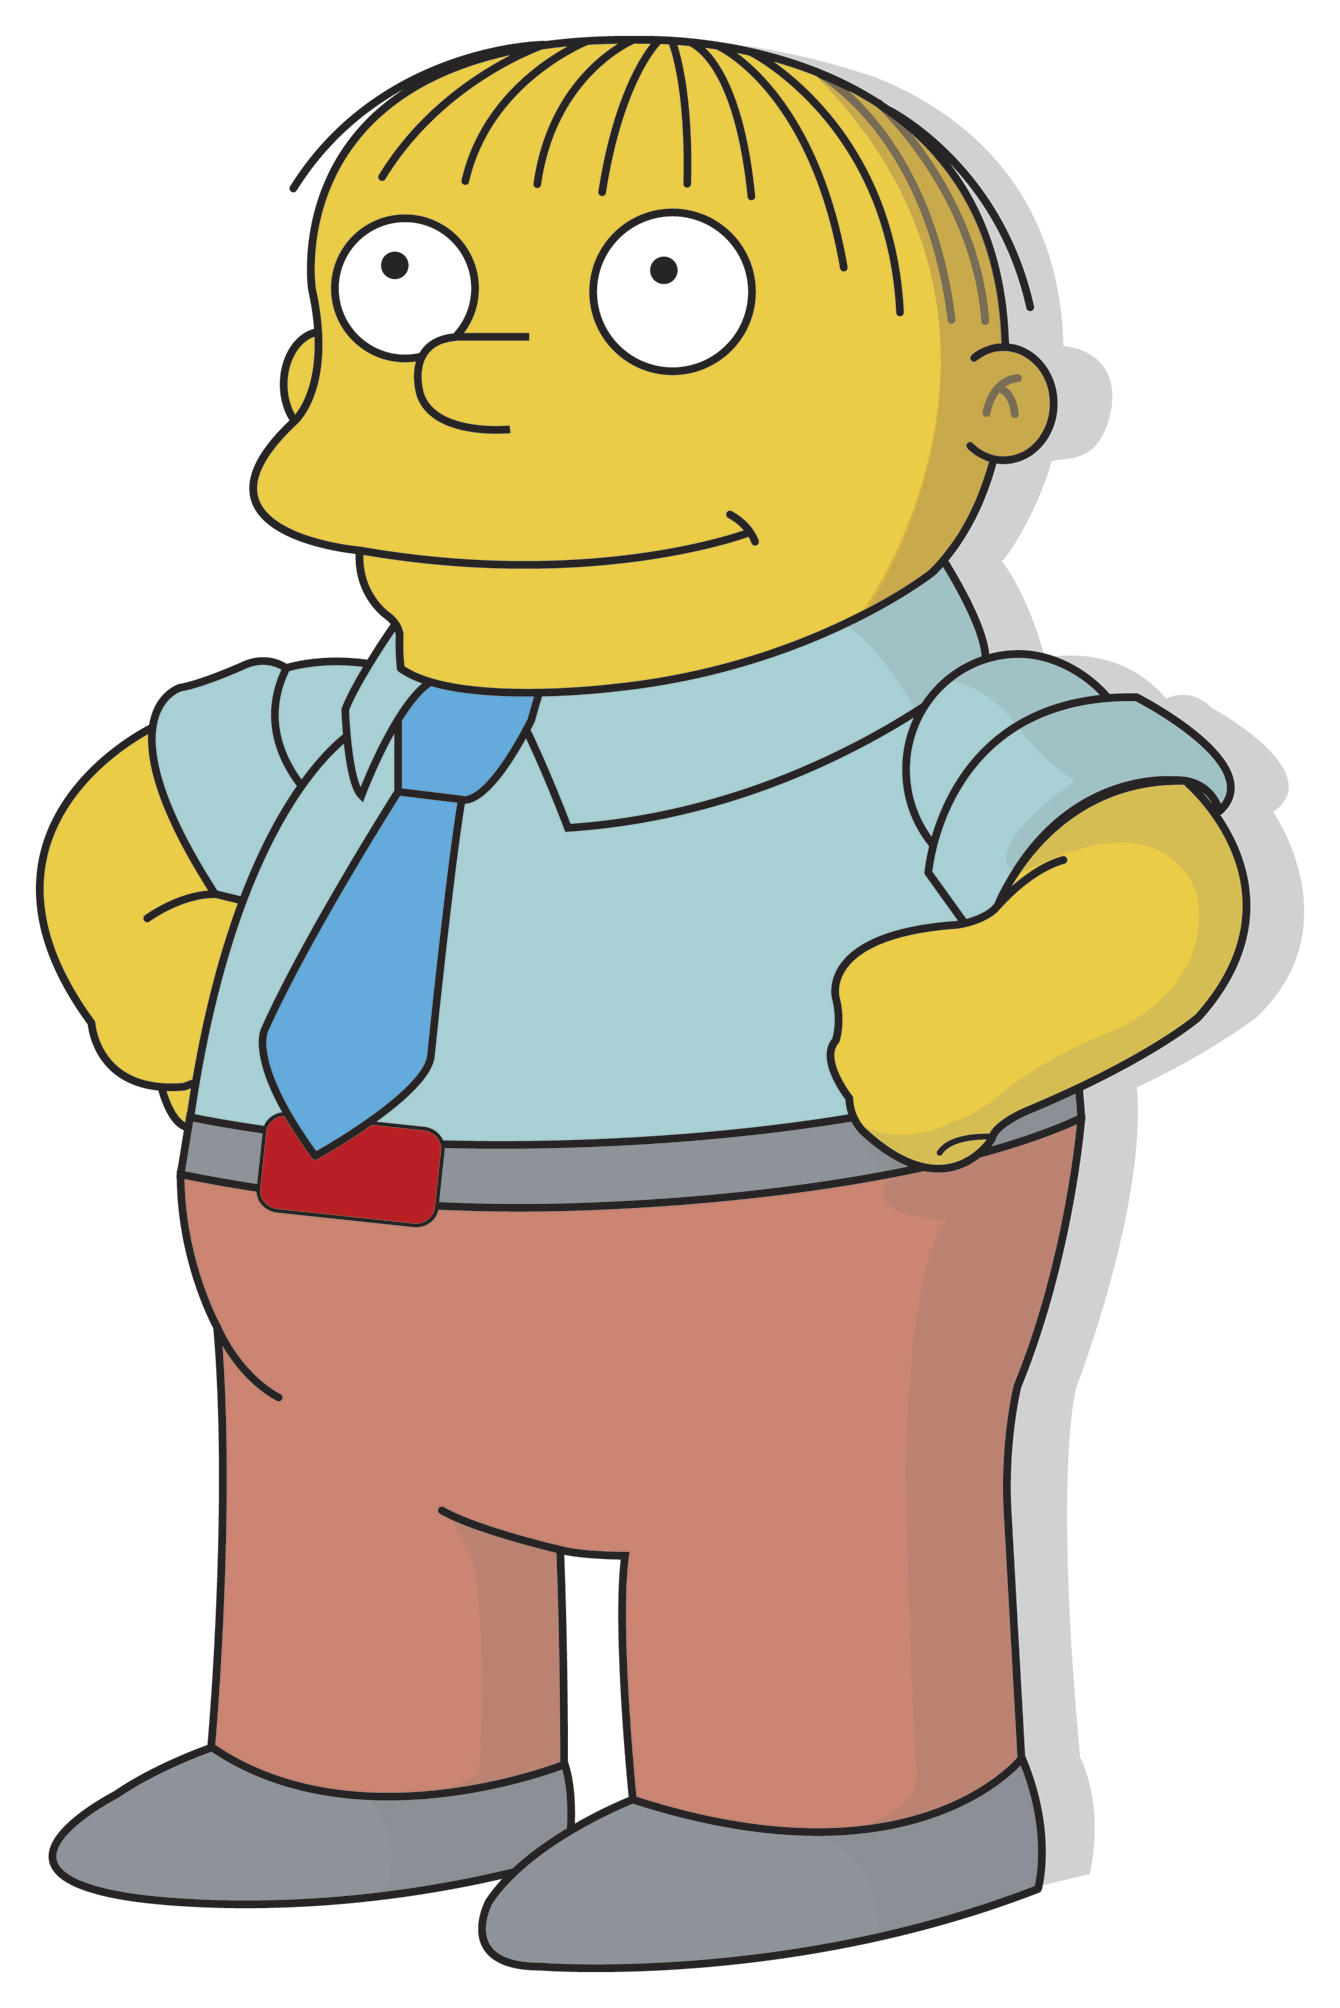 Ralph Wiggum by CartmanPT on DeviantArt